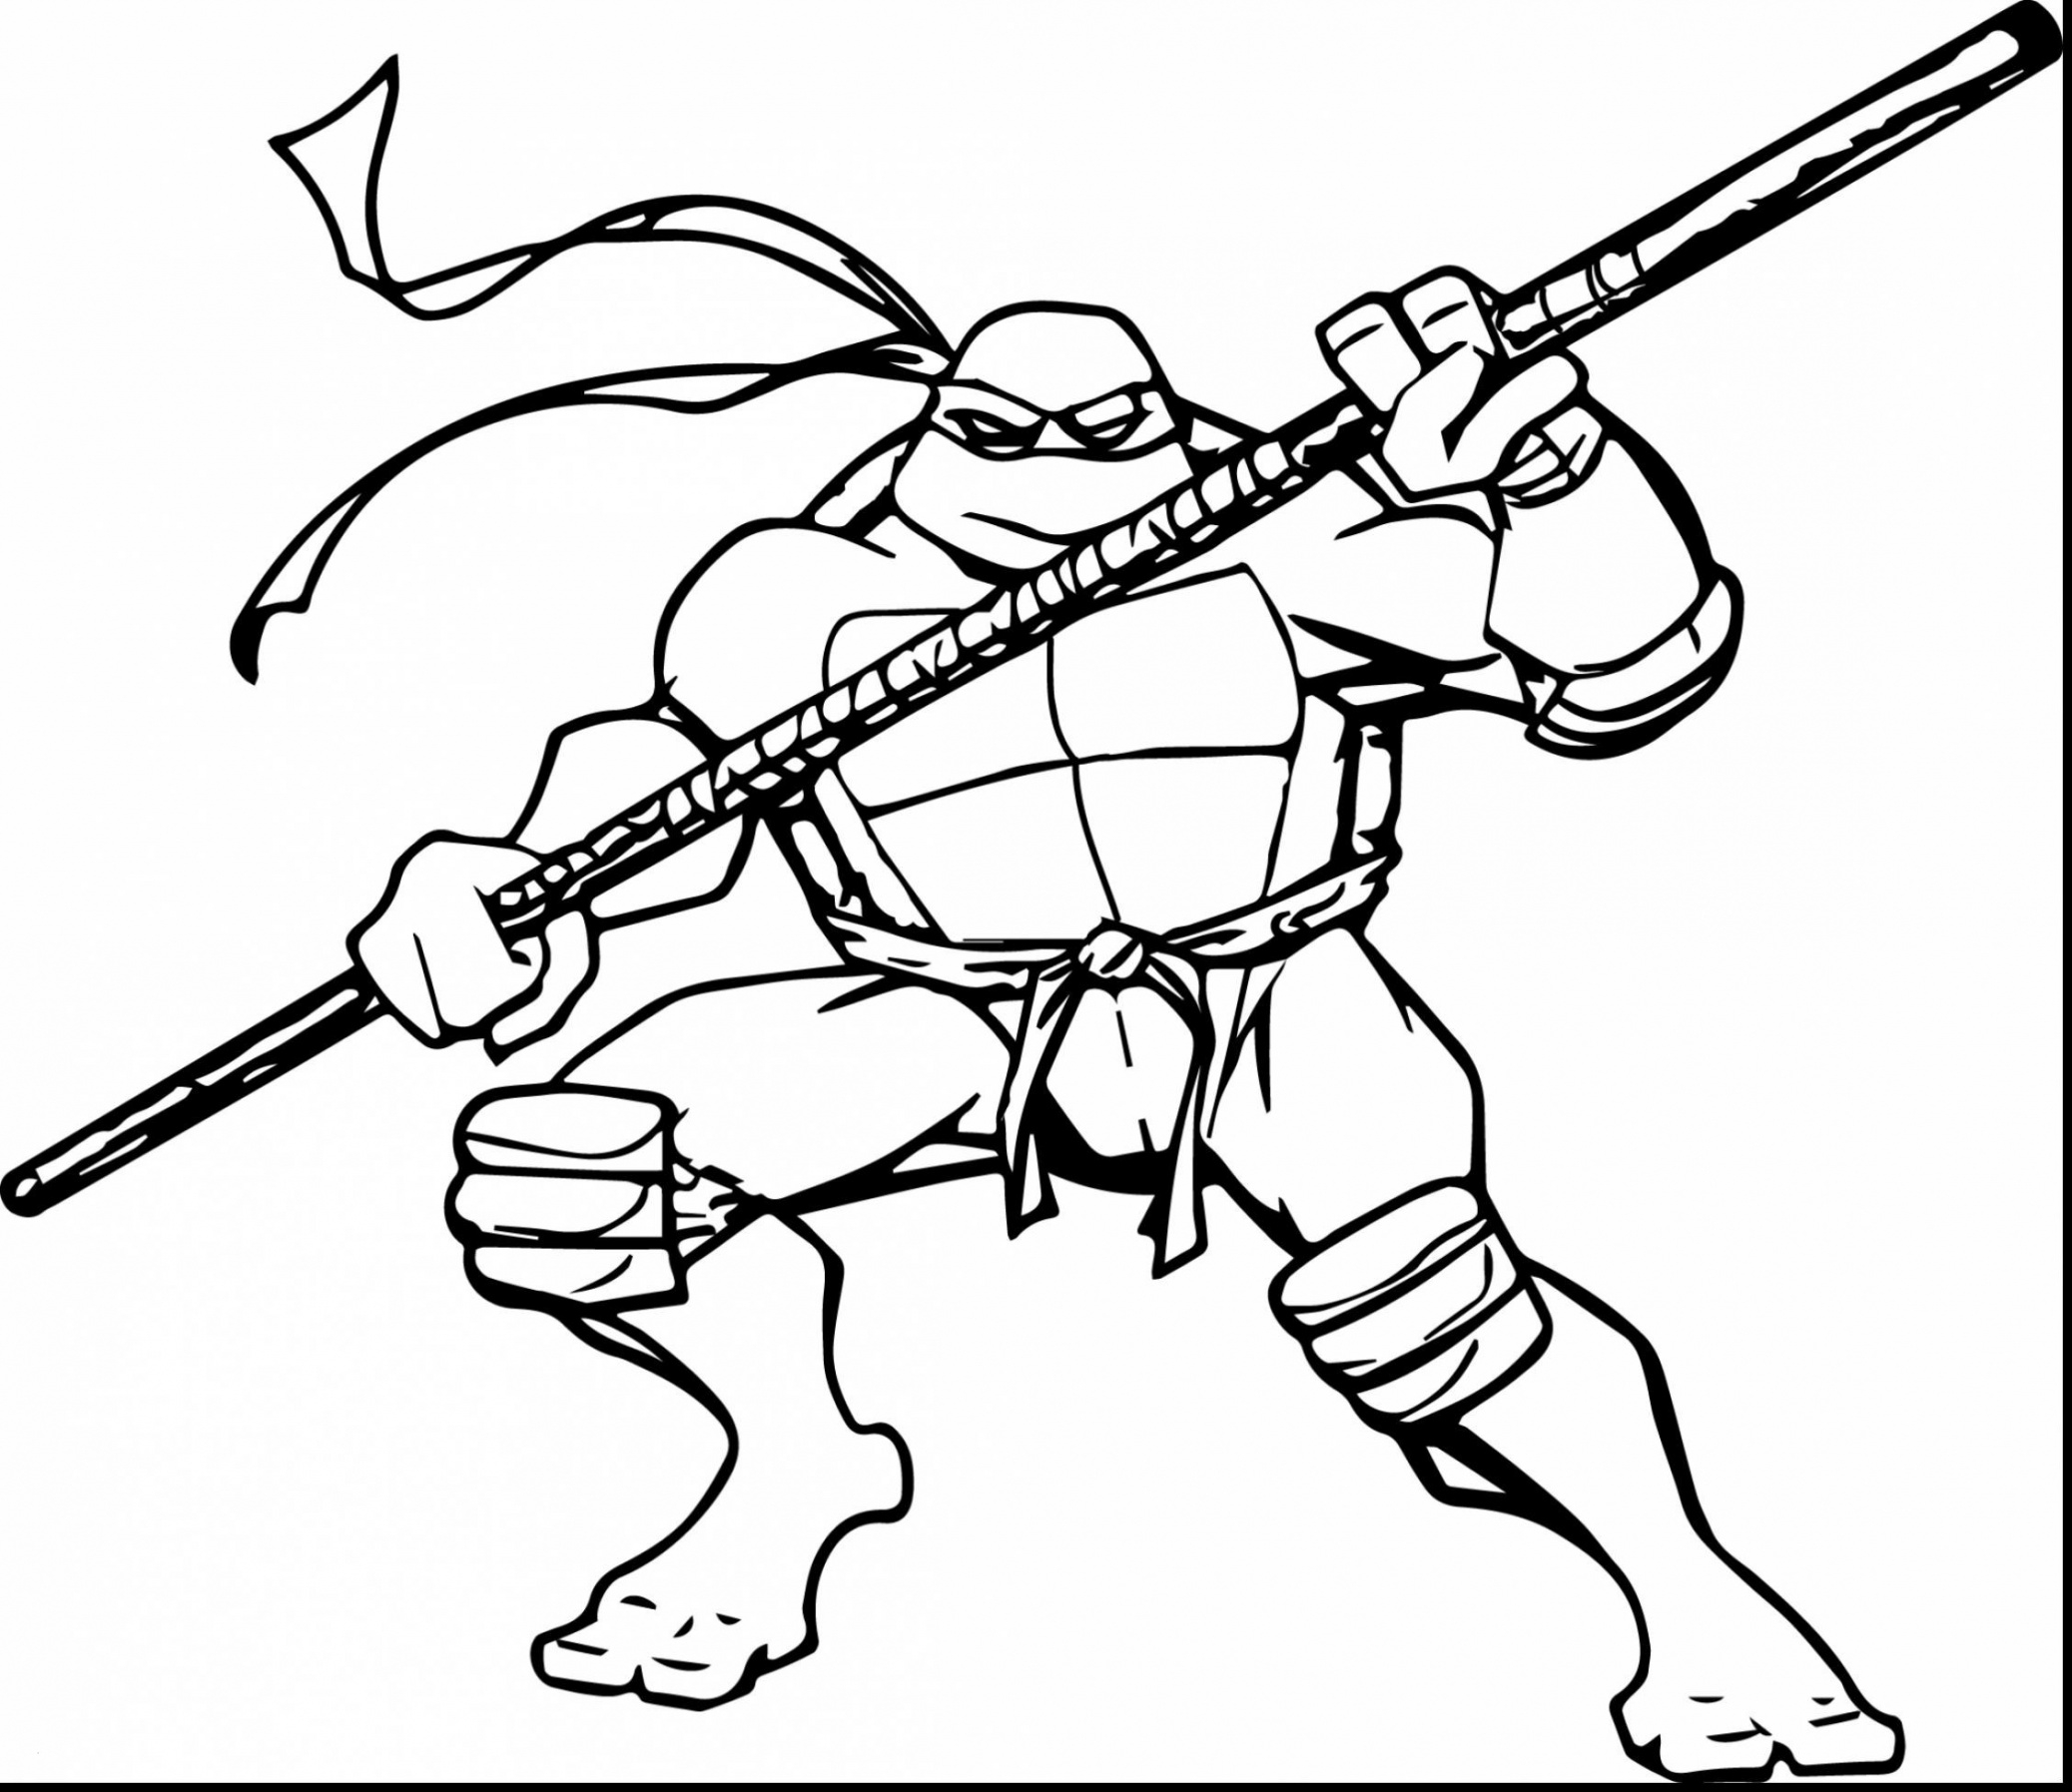 Nickelodeon Teenage Mutant Ninja Turtles Coloring Pages  Collection 14e - Save it to your computer